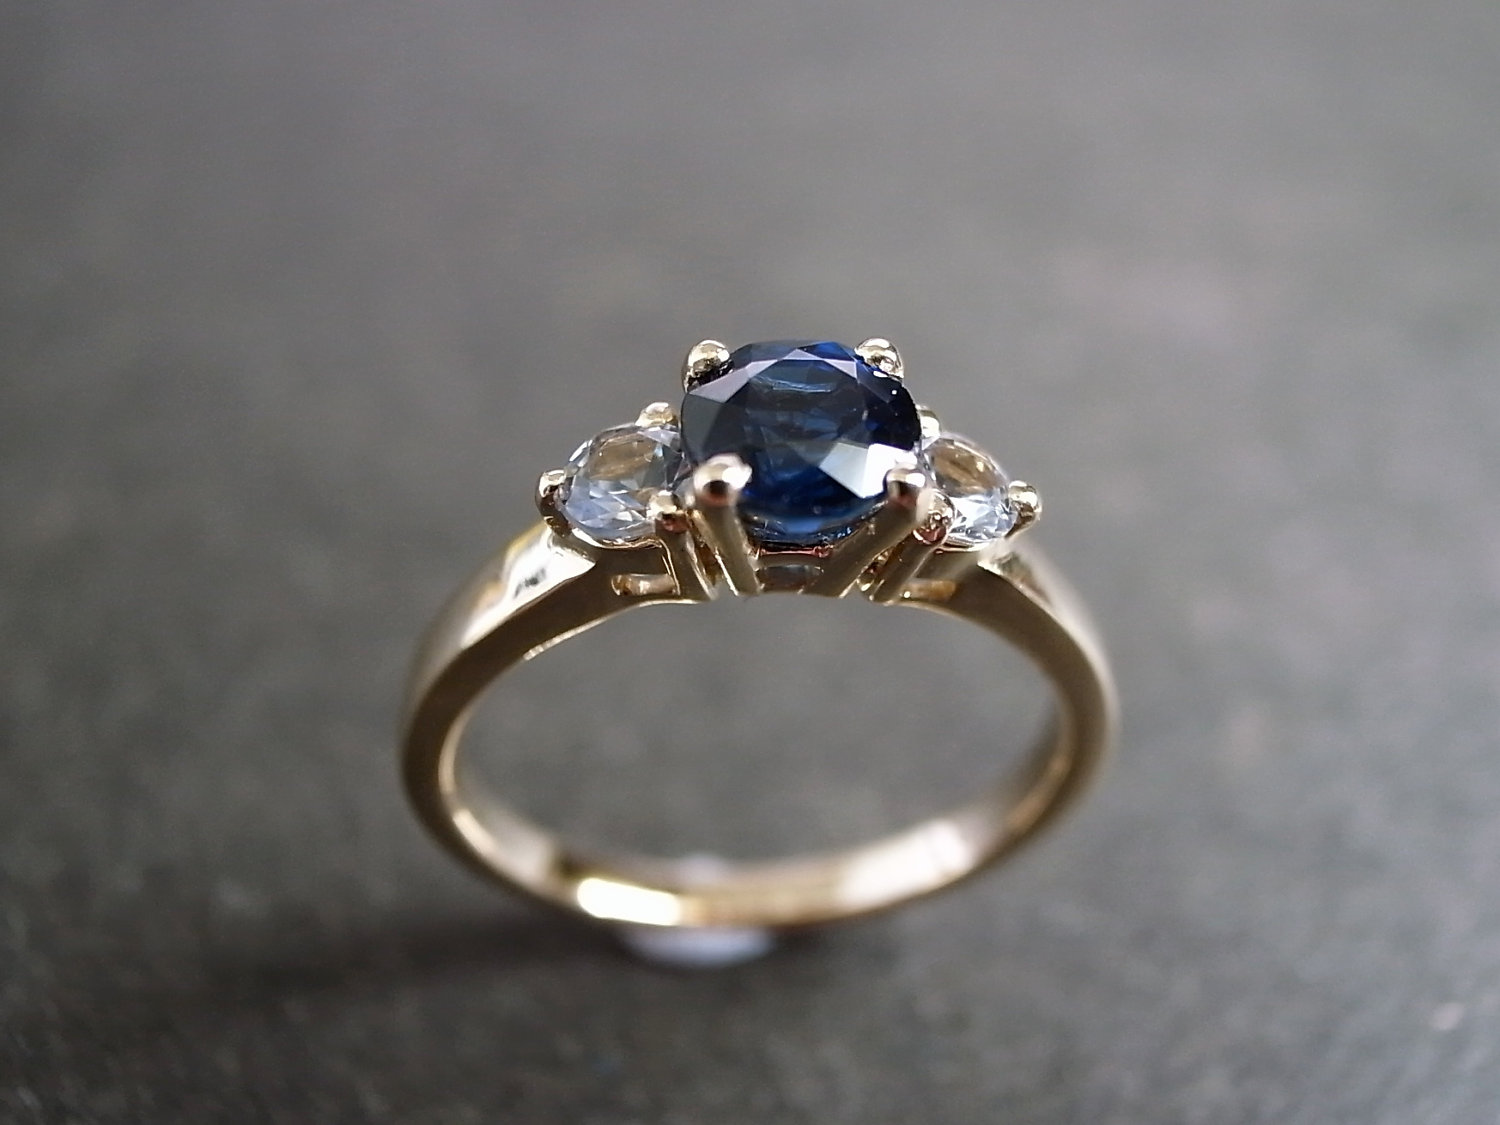 blue sapphire and white sapphire engagement ring blue sapphire wedding rings Blue Sapphire and White Sapphire Engagement Ring